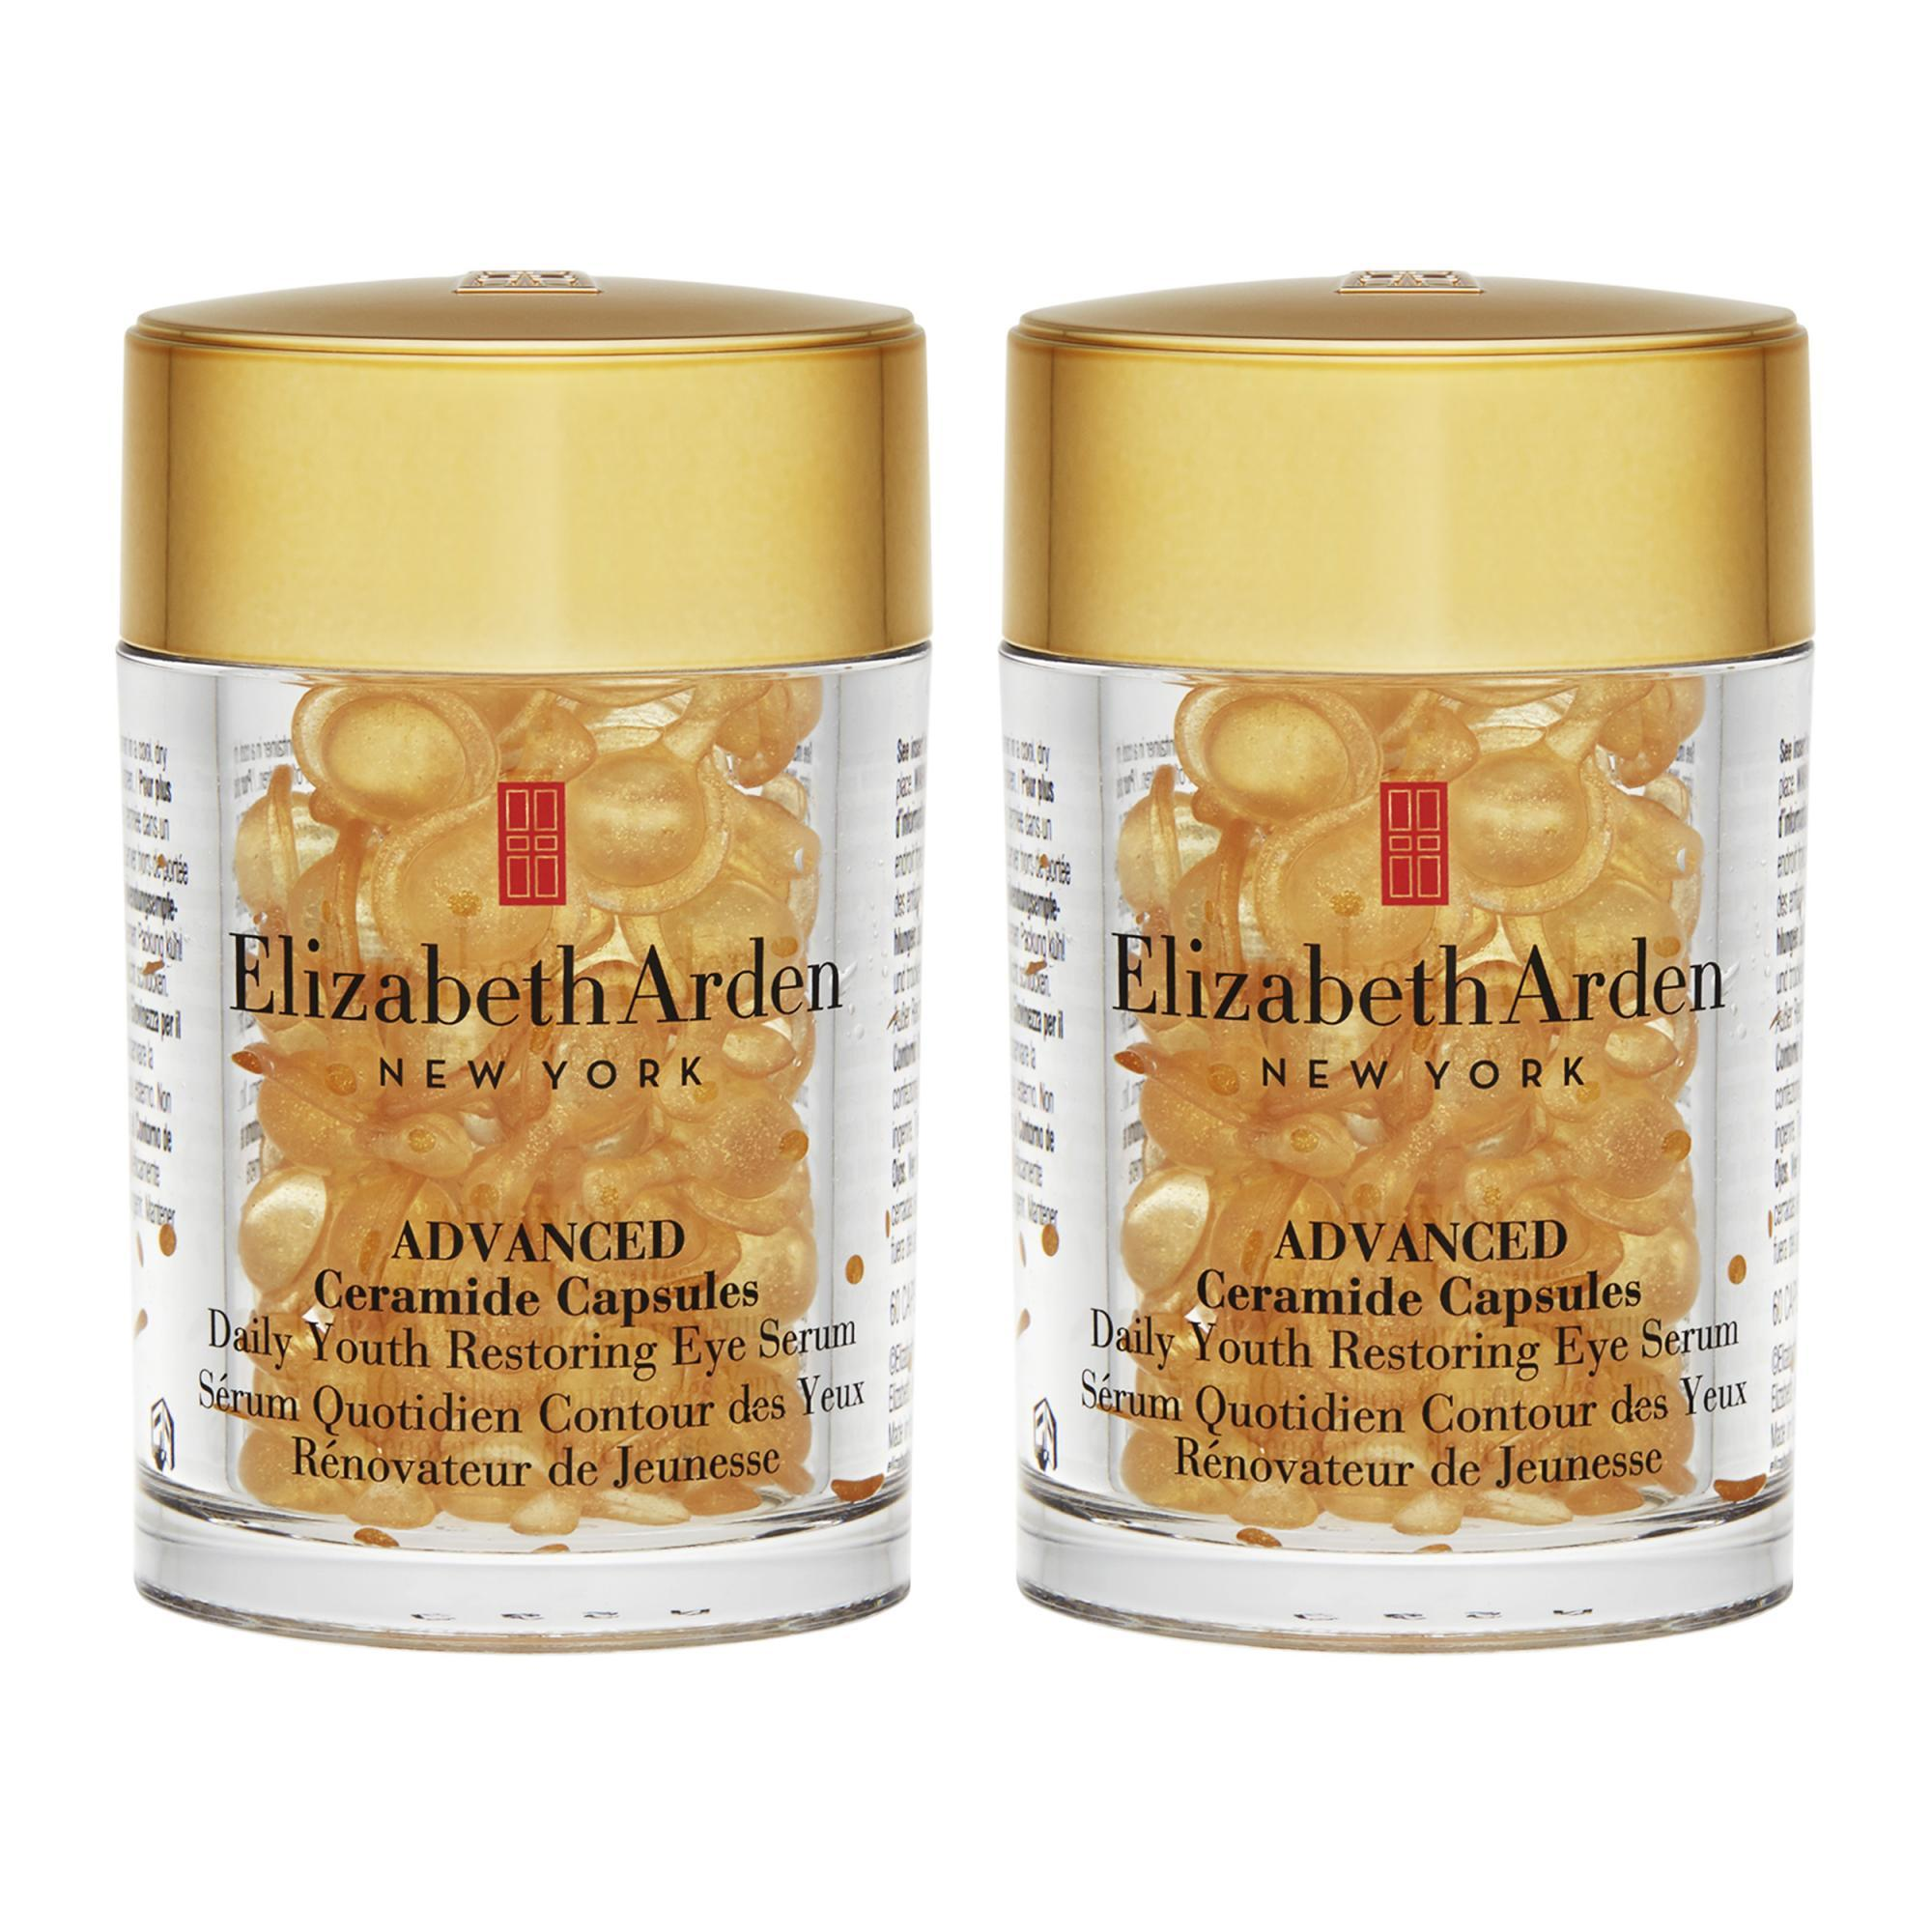 Price Comparison For 2 X Elizabeth Arden Advanced Ceramide Capsules Daily Youth Restoring Eye Serum 60Capsules Intl